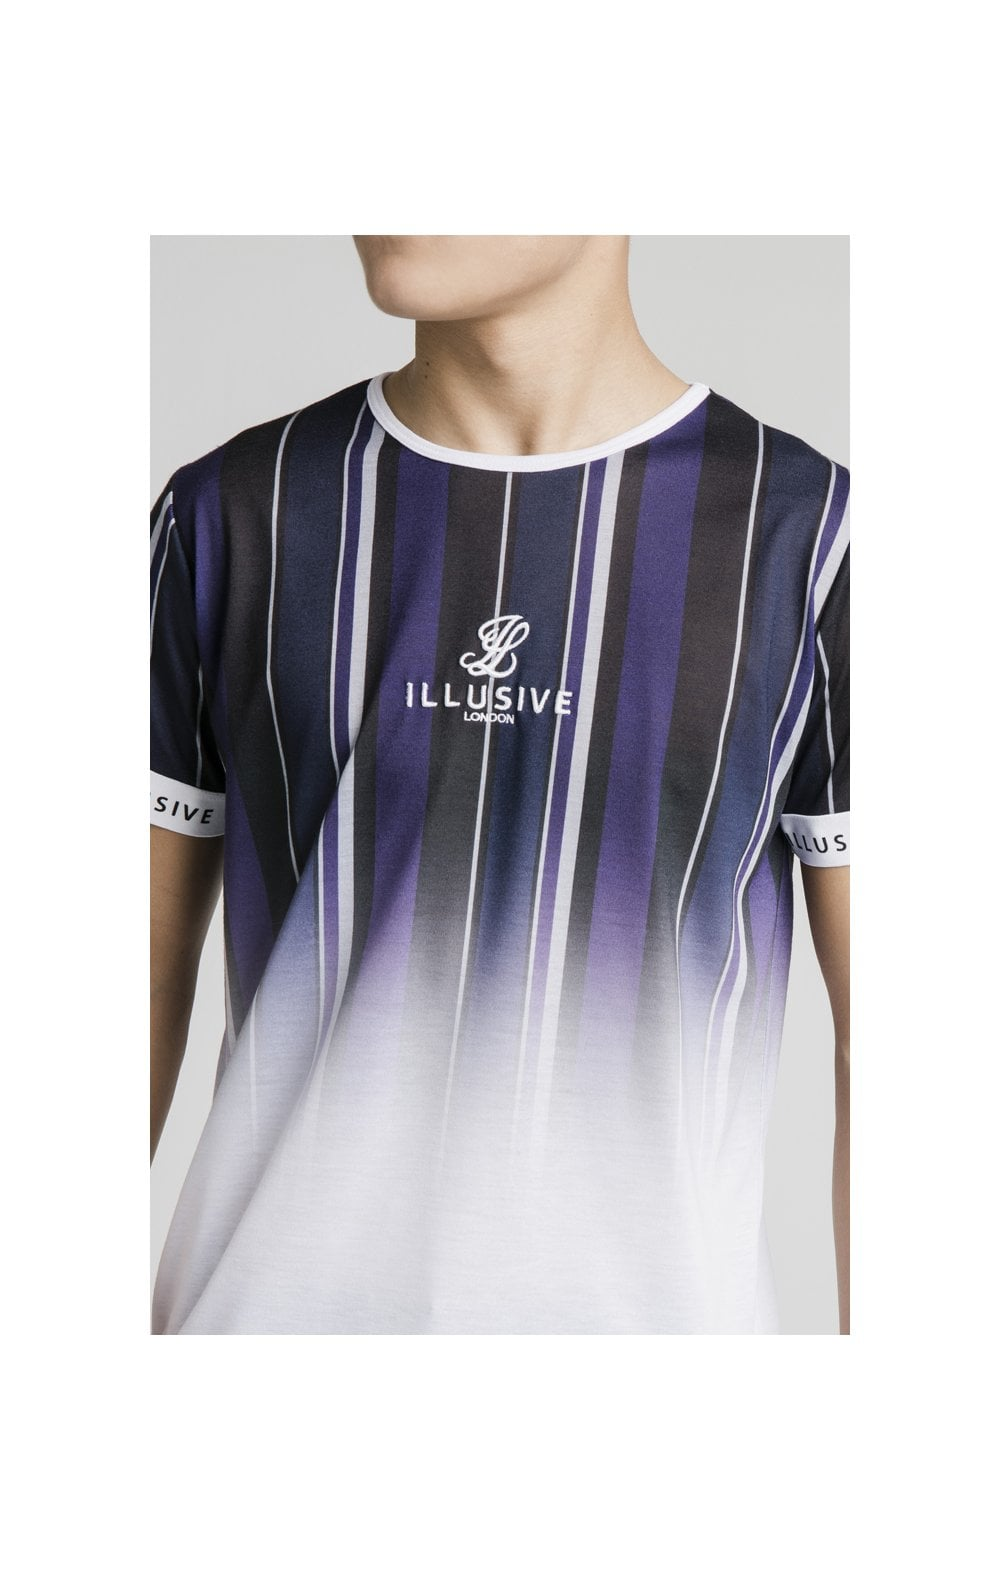 Load image into Gallery viewer, Illusive London Fade Stripe Tech Tee - Navy, Purple, Grey & White